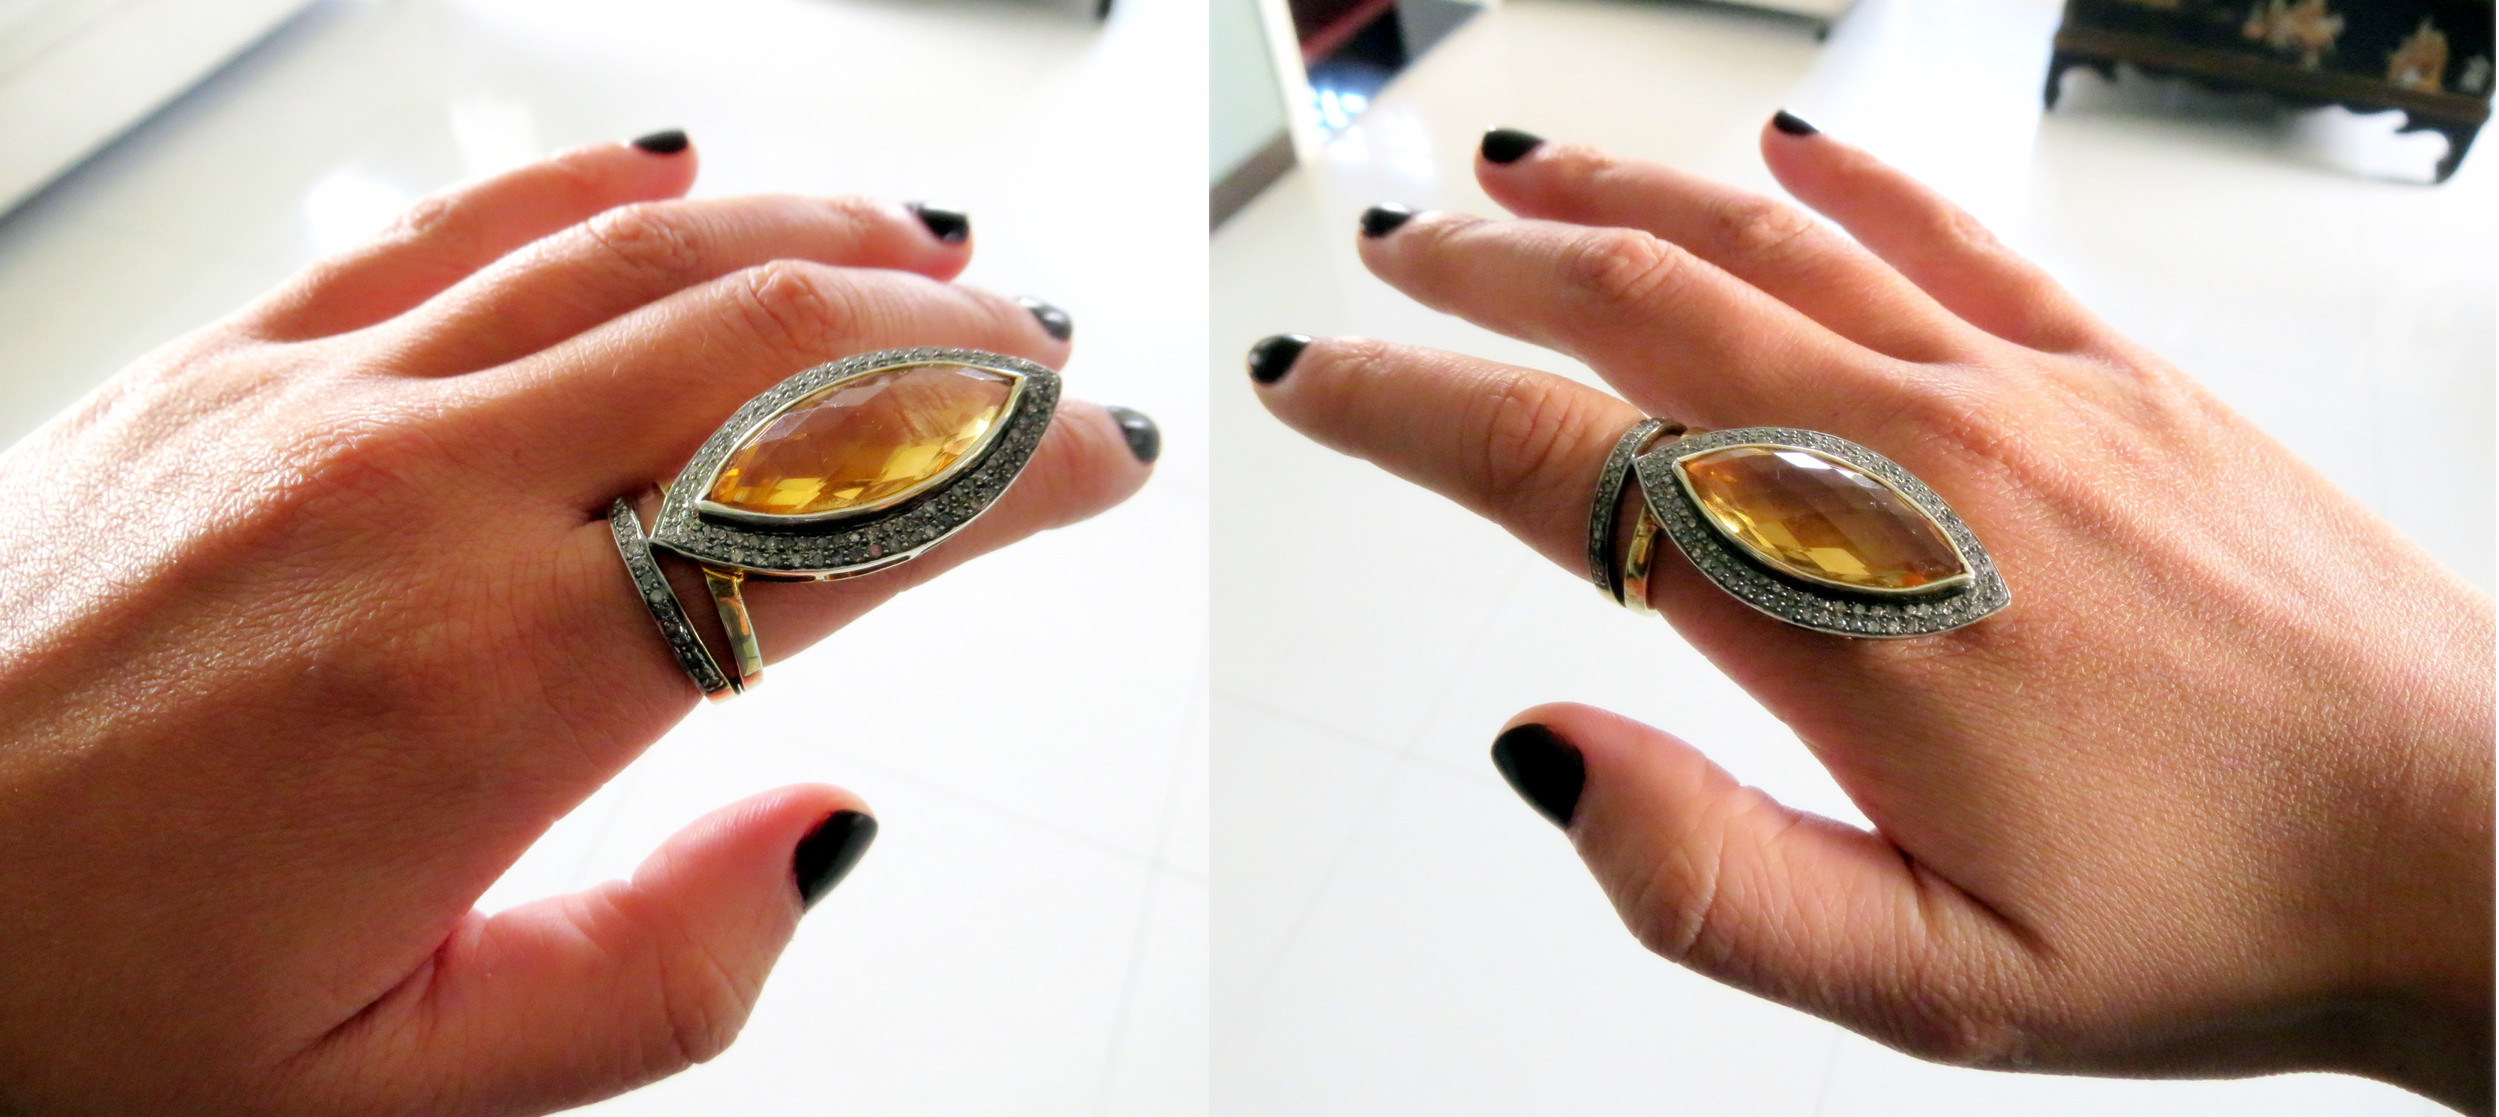 Amber and diamond knuckle ring (RMB 1,650)